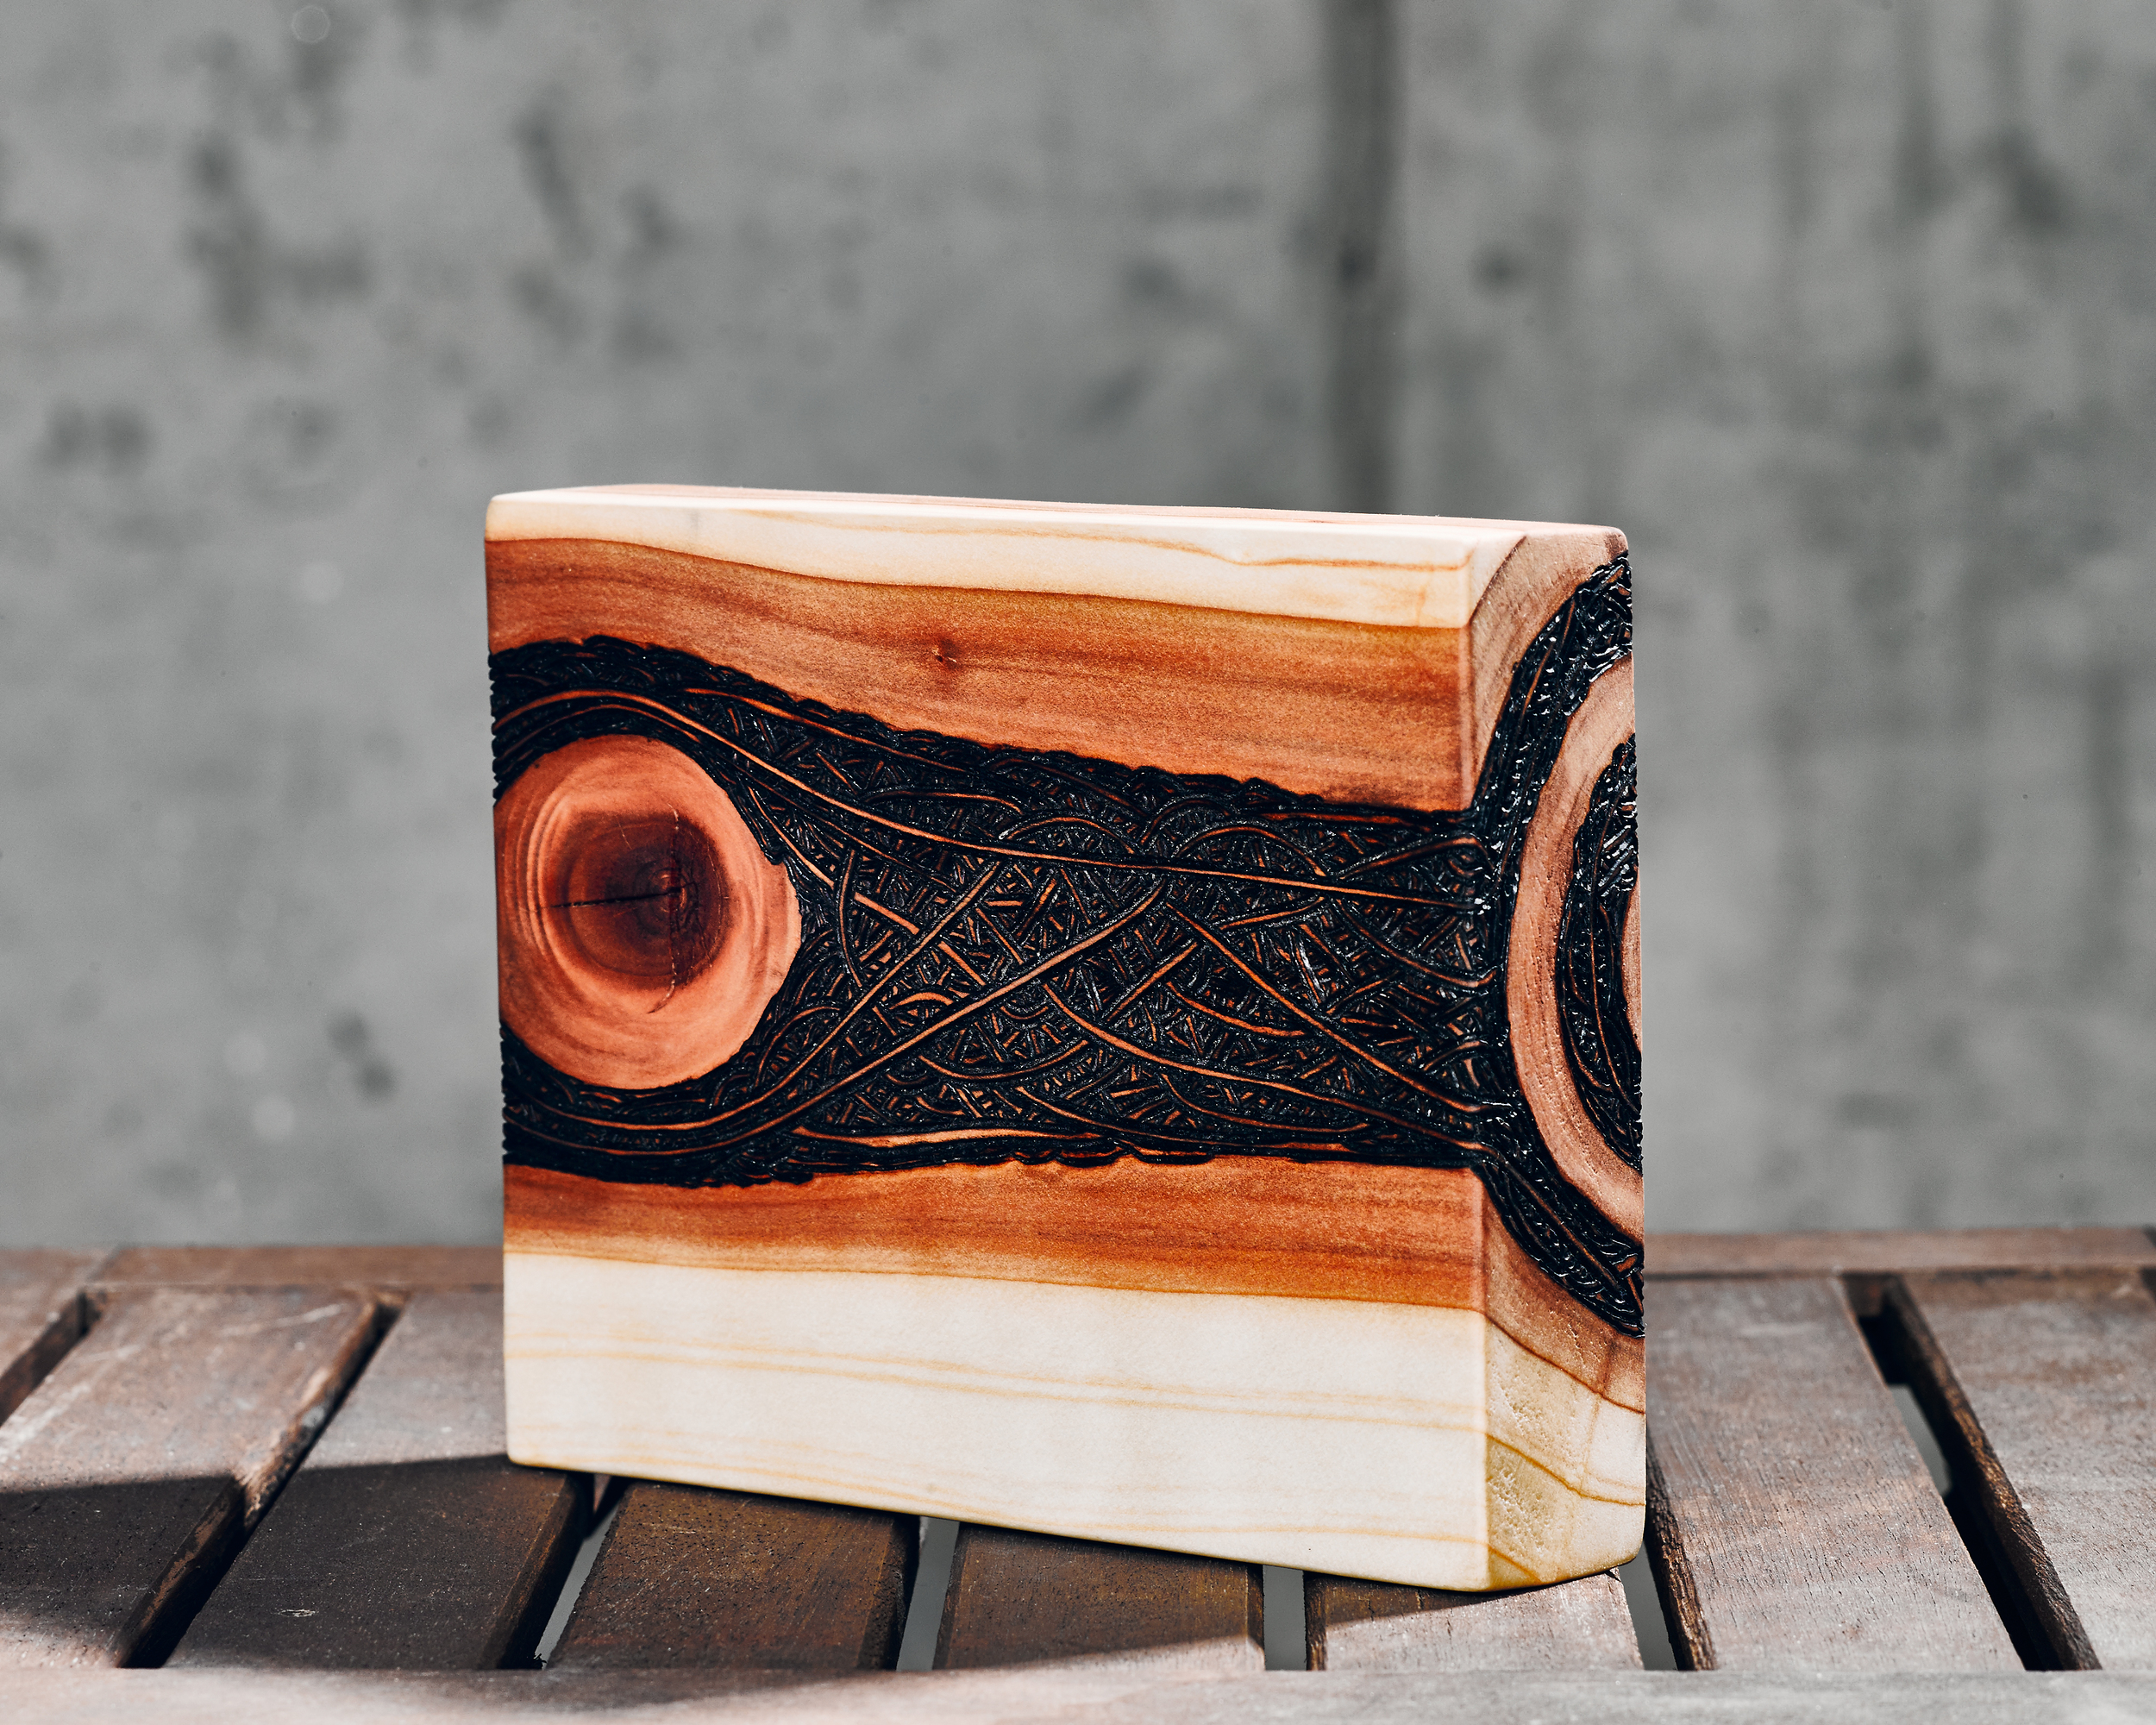 Interconnections  (2015)  Wood Burning on Red Wood 7 in x 1 ½ in x 6 in  SOLD